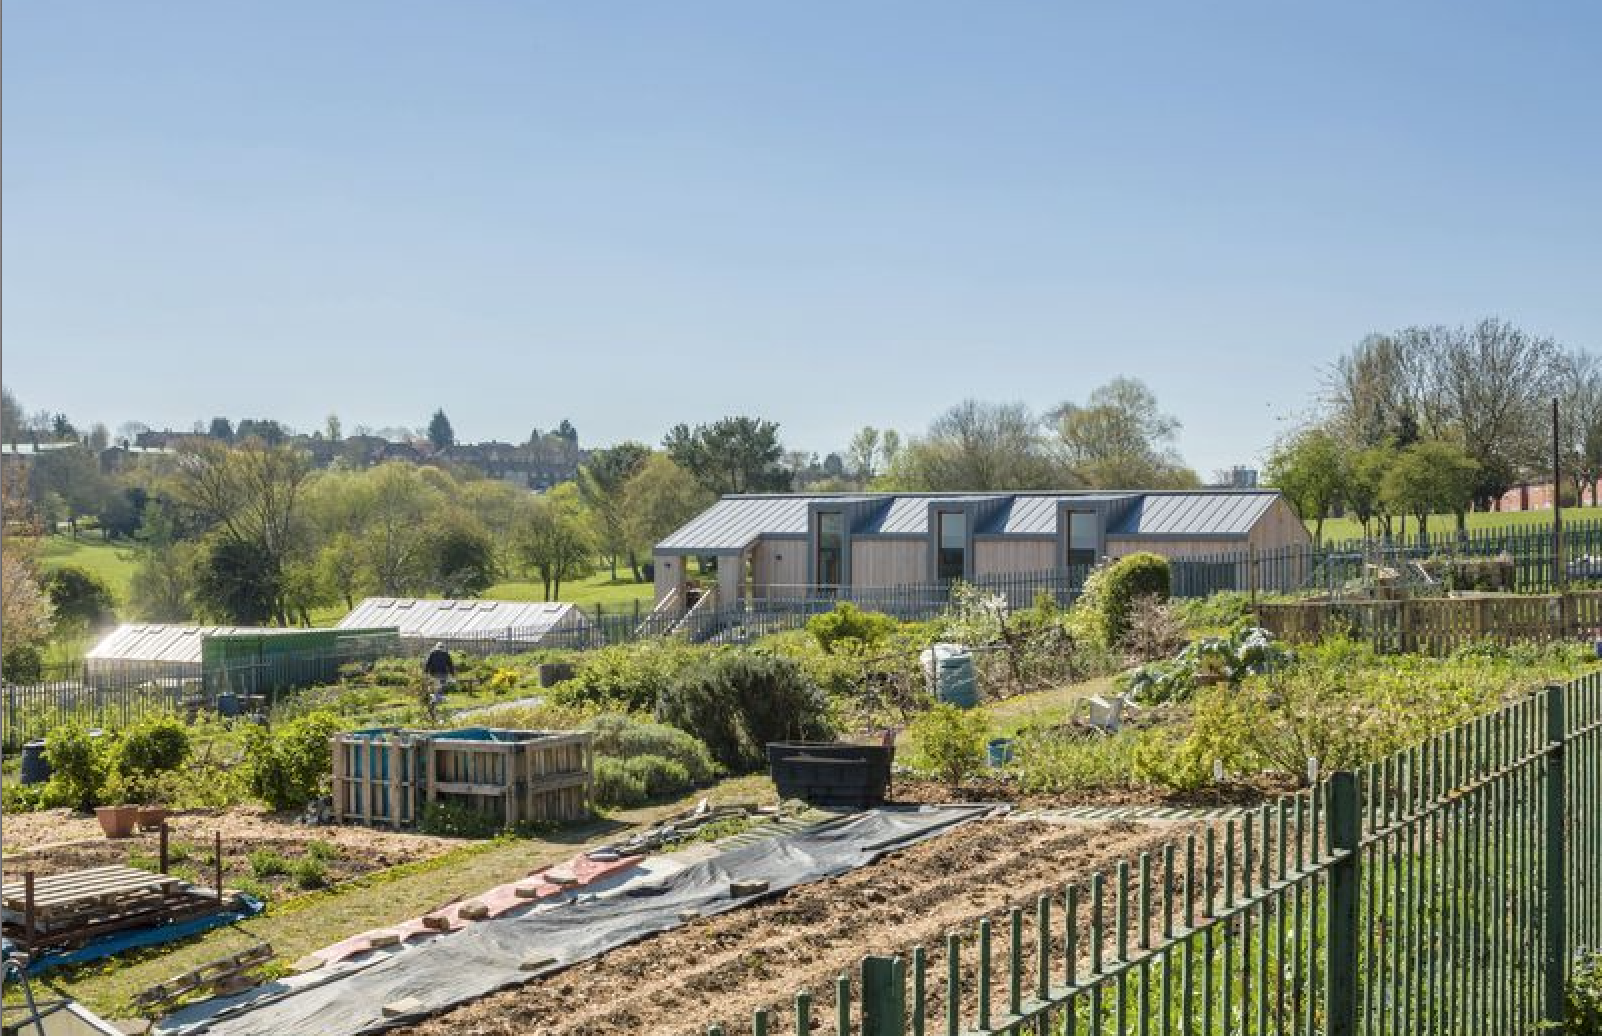 A Community Kitchen + Garden For Croydon - Incredible indoor and outdoor space to learn, grow and enjoy.